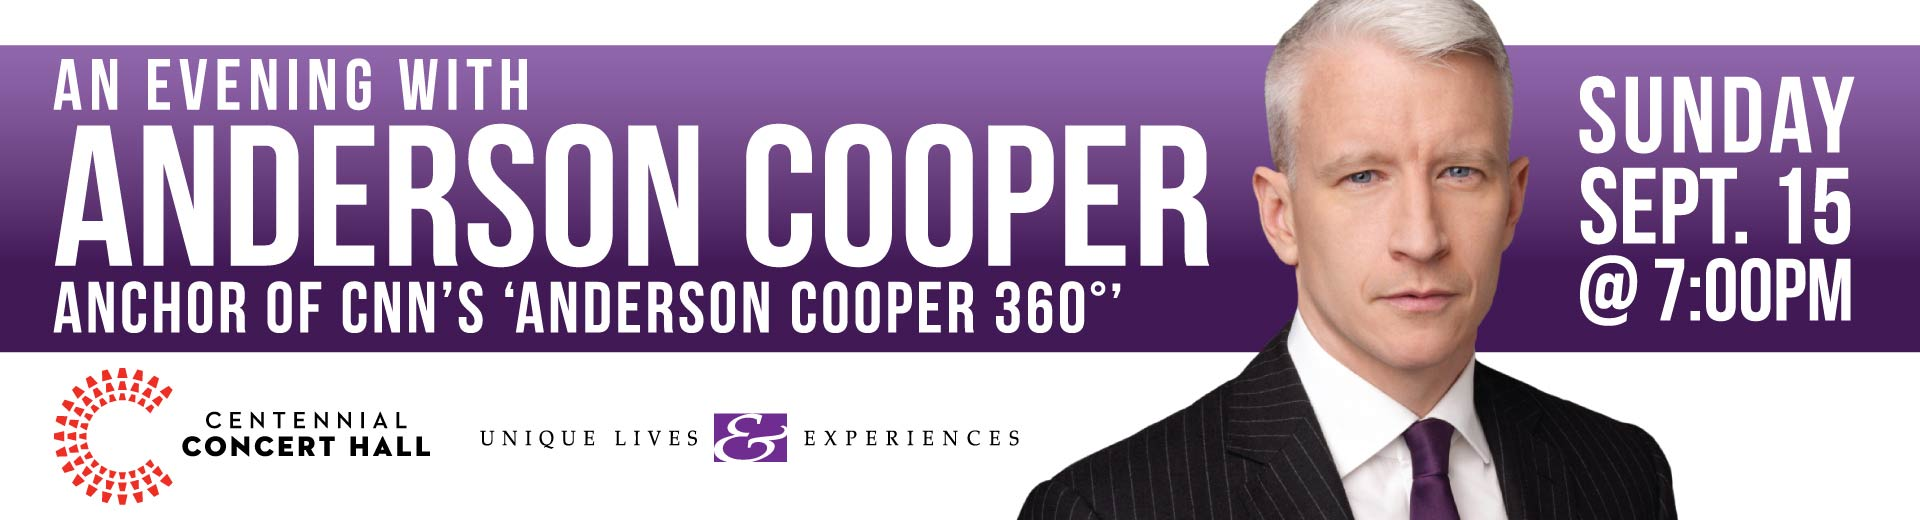 An Evening with Anderson Cooper - Sept 15, 2019 in Winnipeg